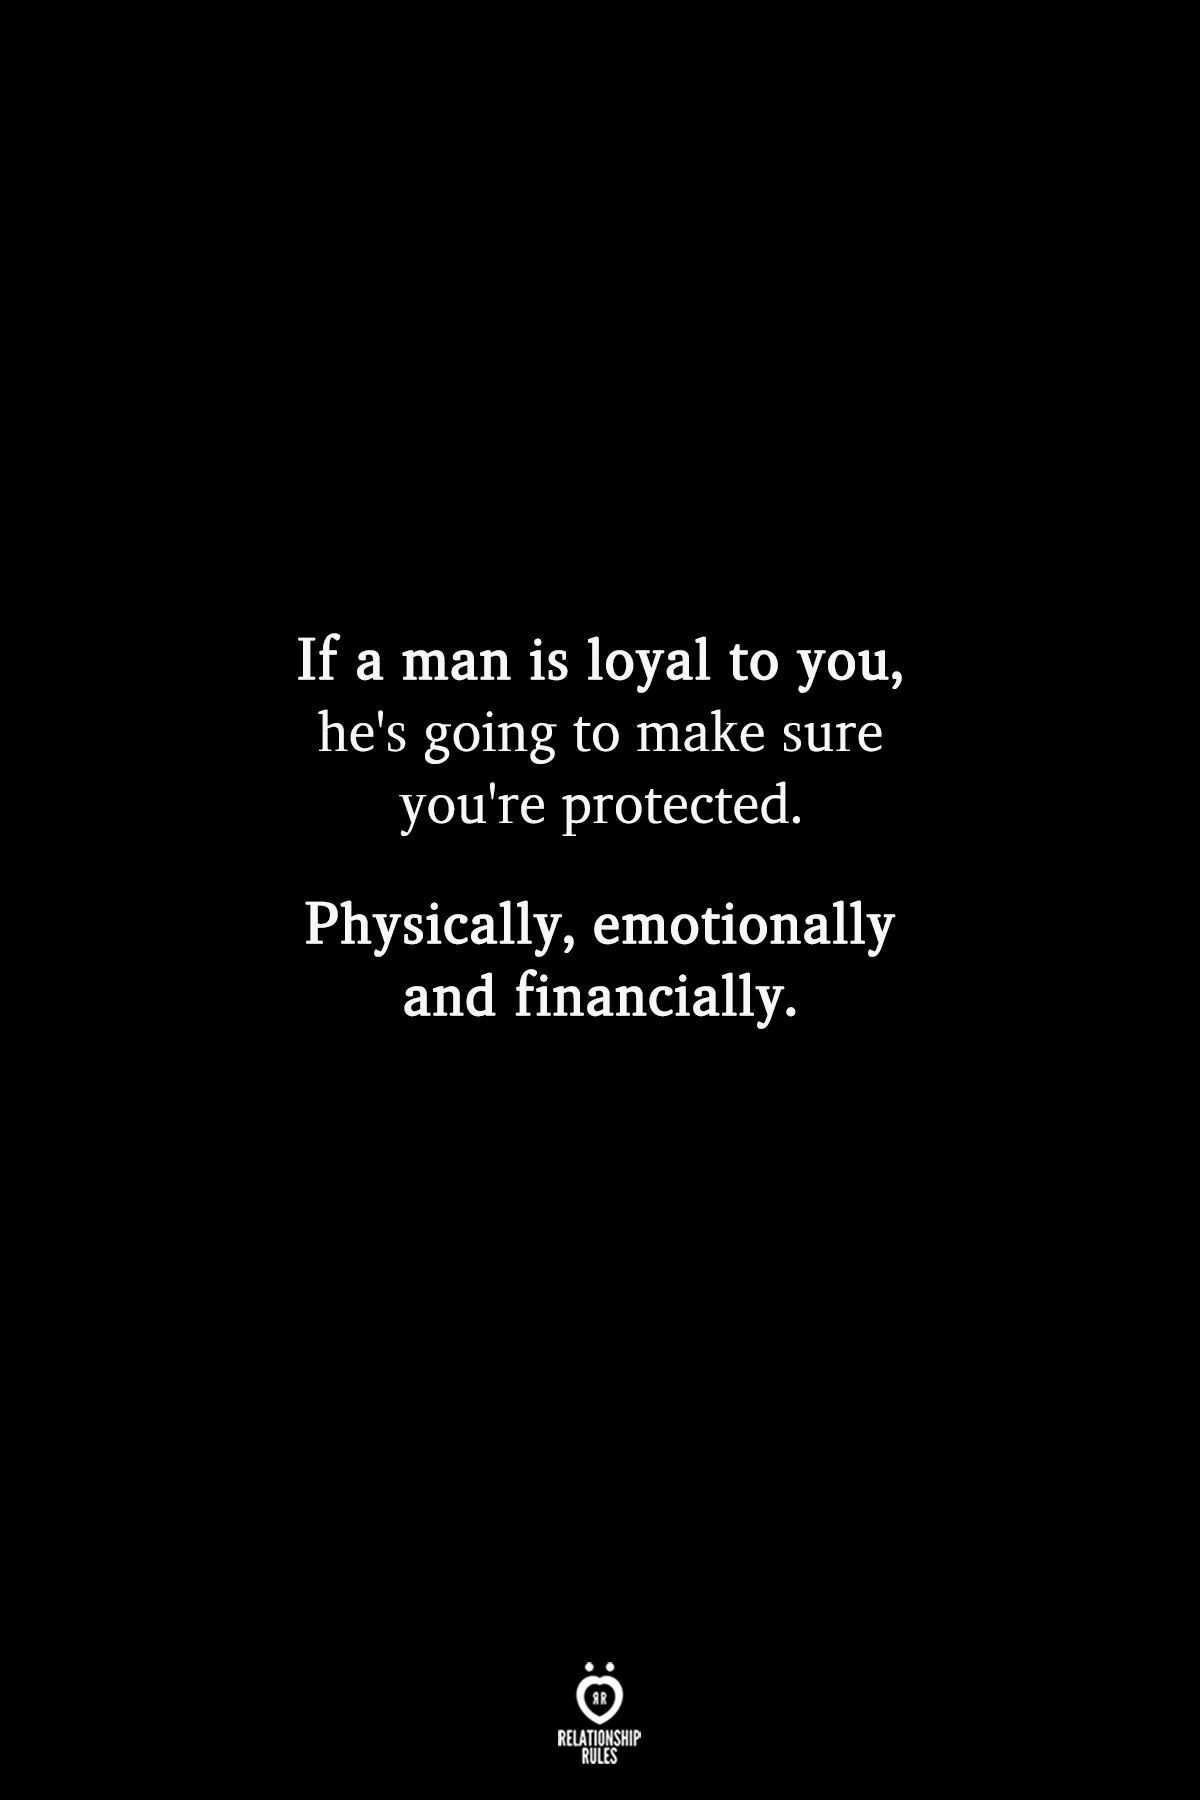 Relationship Rules: Love & Loyalty   Inspirational quotes ...